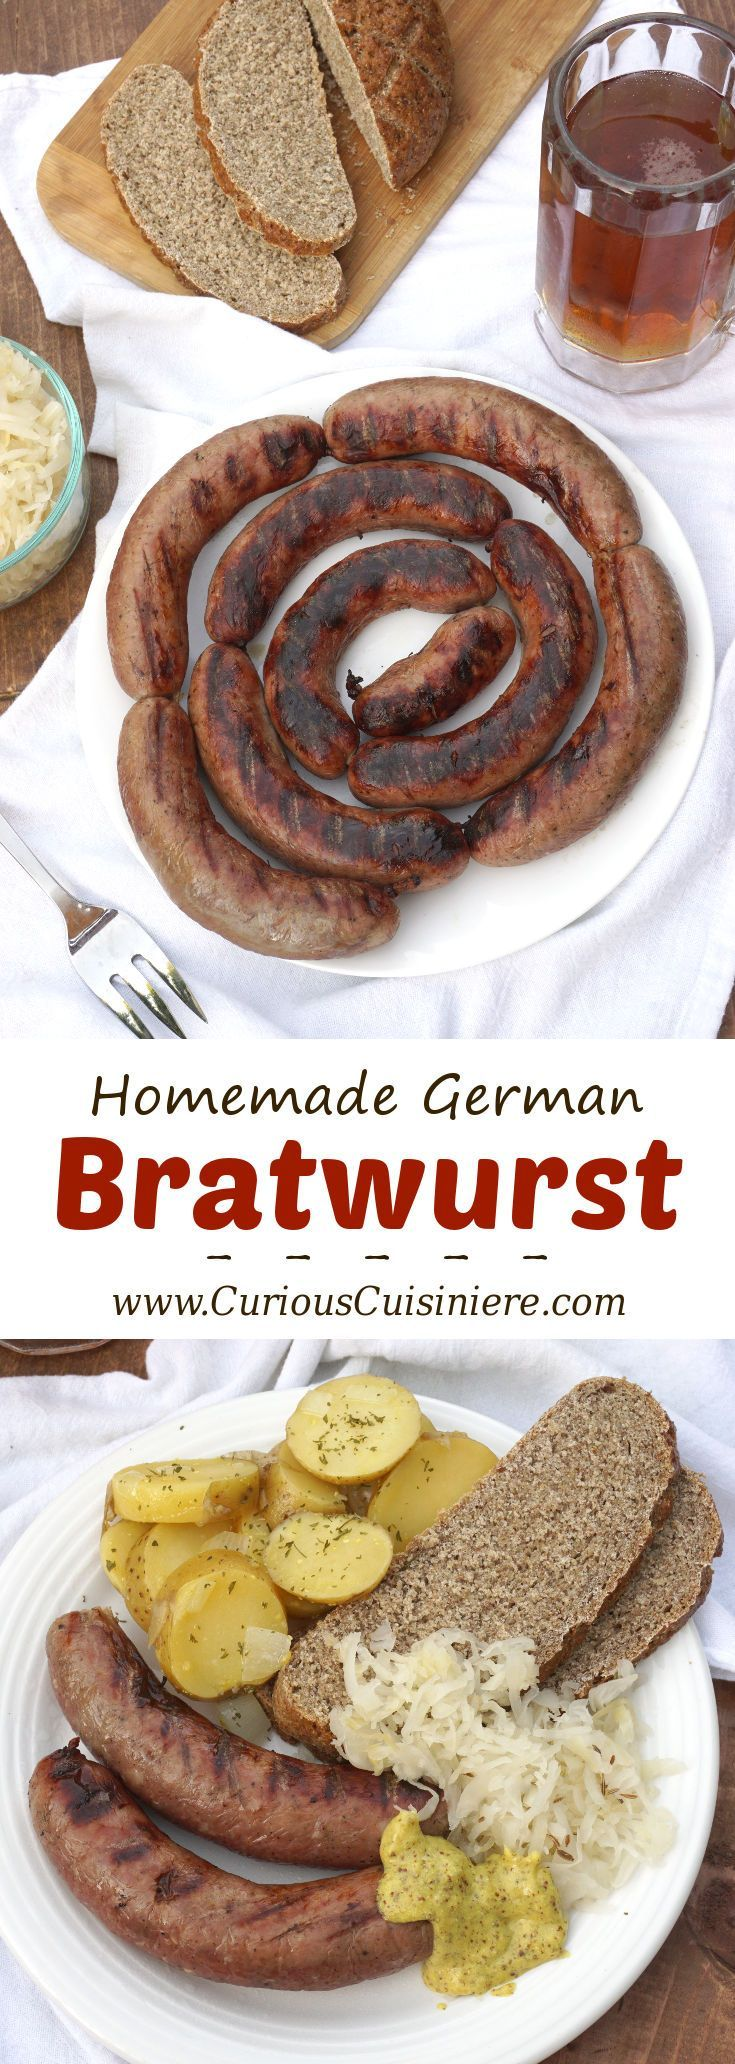 Homemade bratwurst is perfect for summer grilling and Oktoberfest celebrations! | Curious Cuisiniere